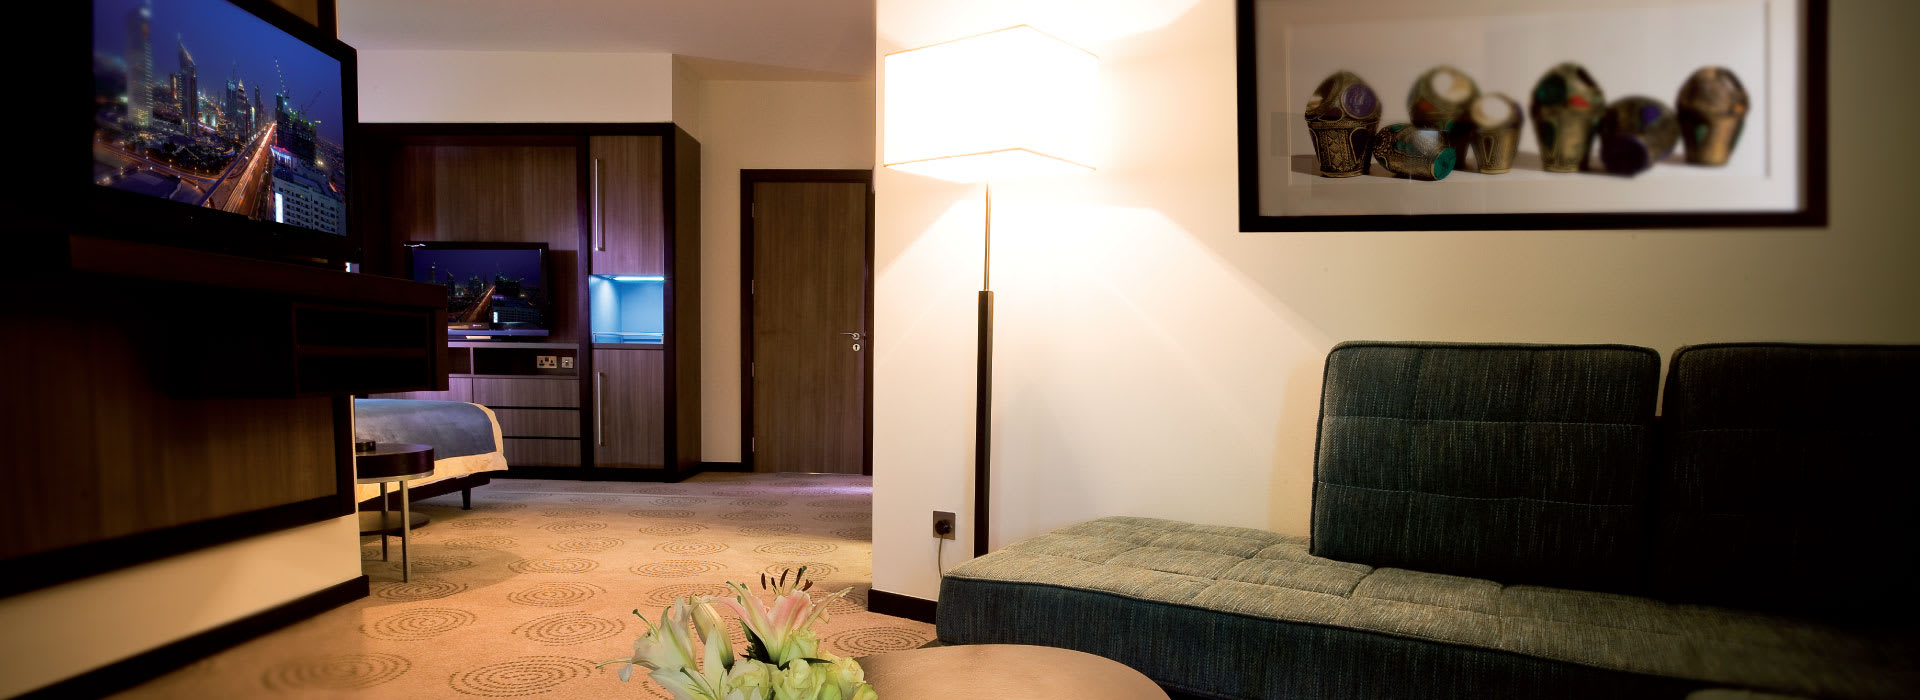 Interior of AVANI Deira junior suite